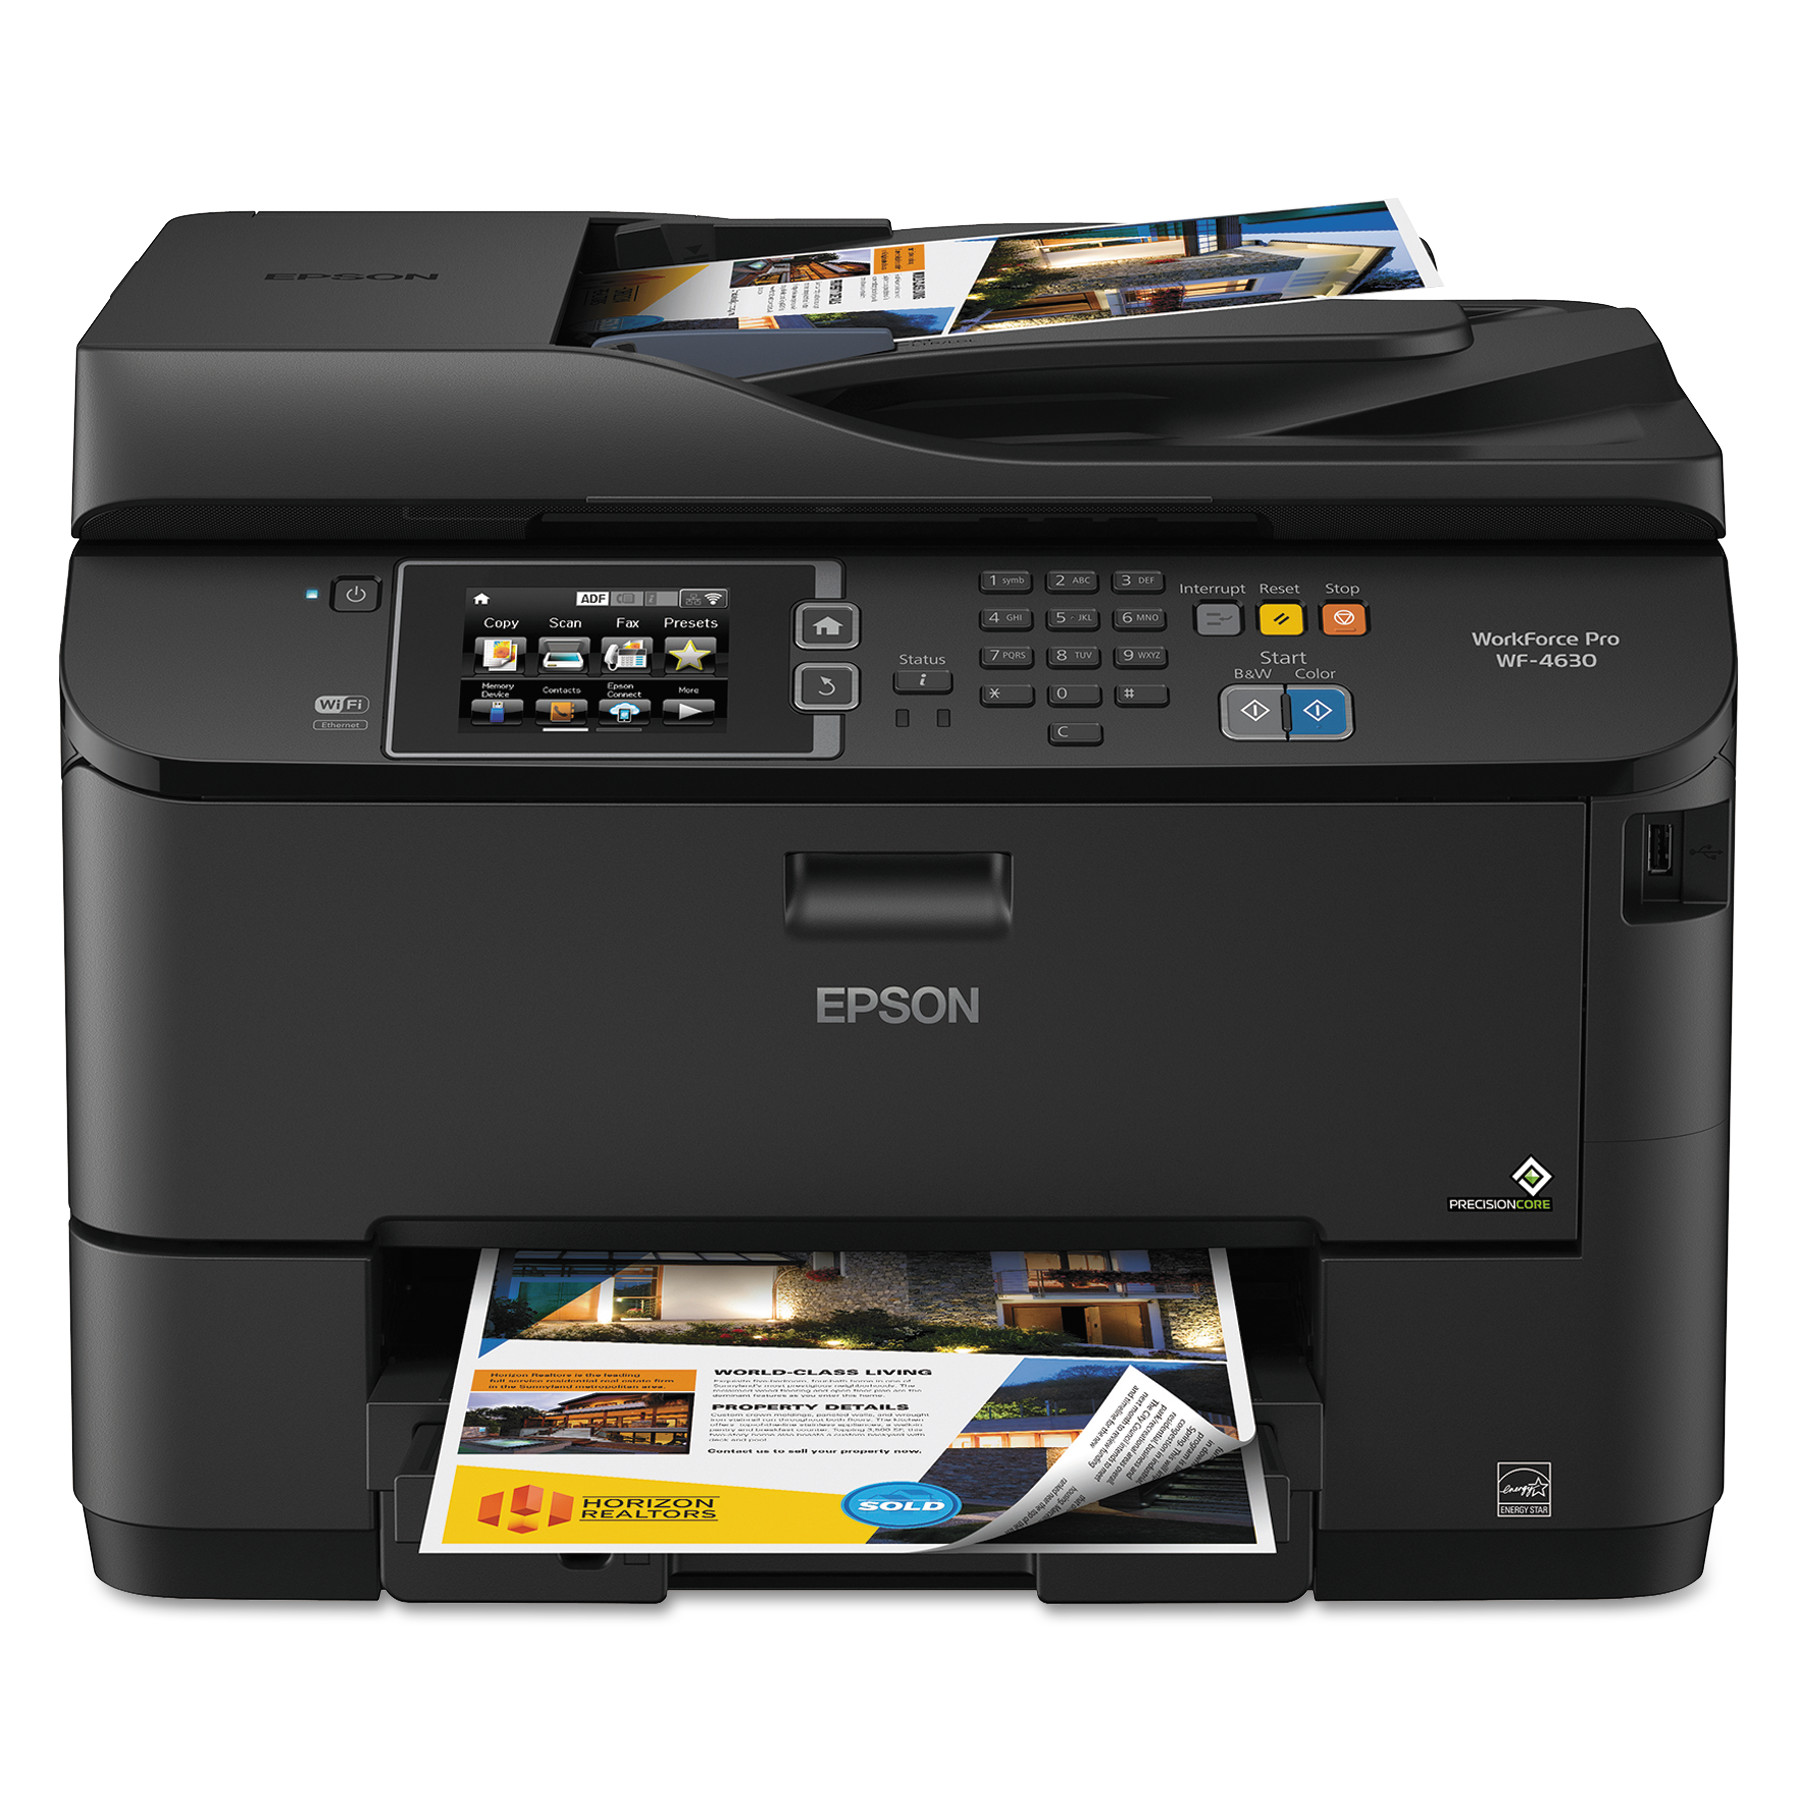 Epson WorkForce Pro WF-4630 - multifunction printer (color)